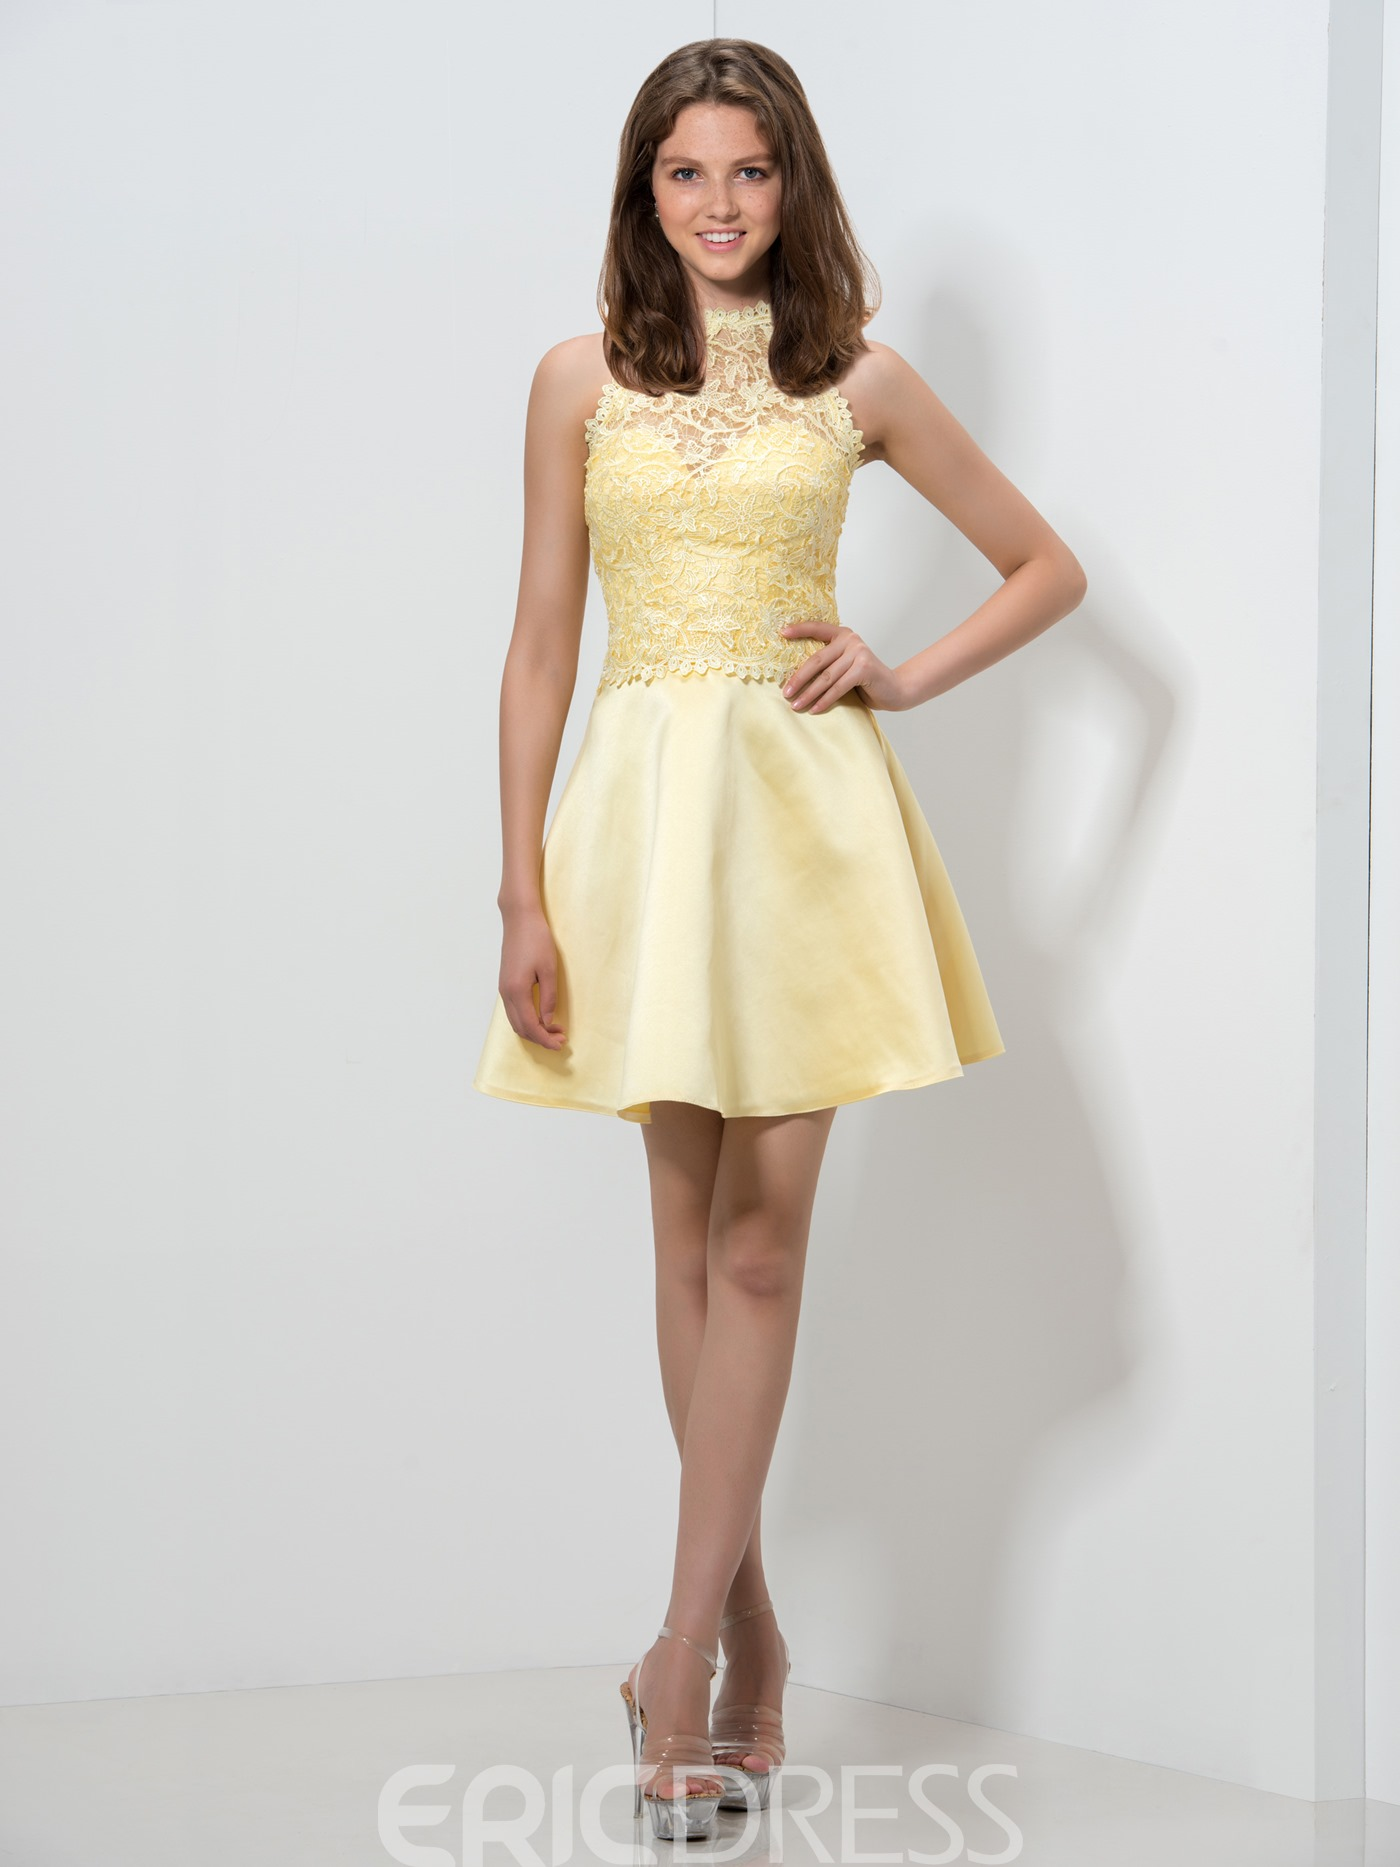 Ericdress Lace Bowknot Pearl Short Homecoming Dress